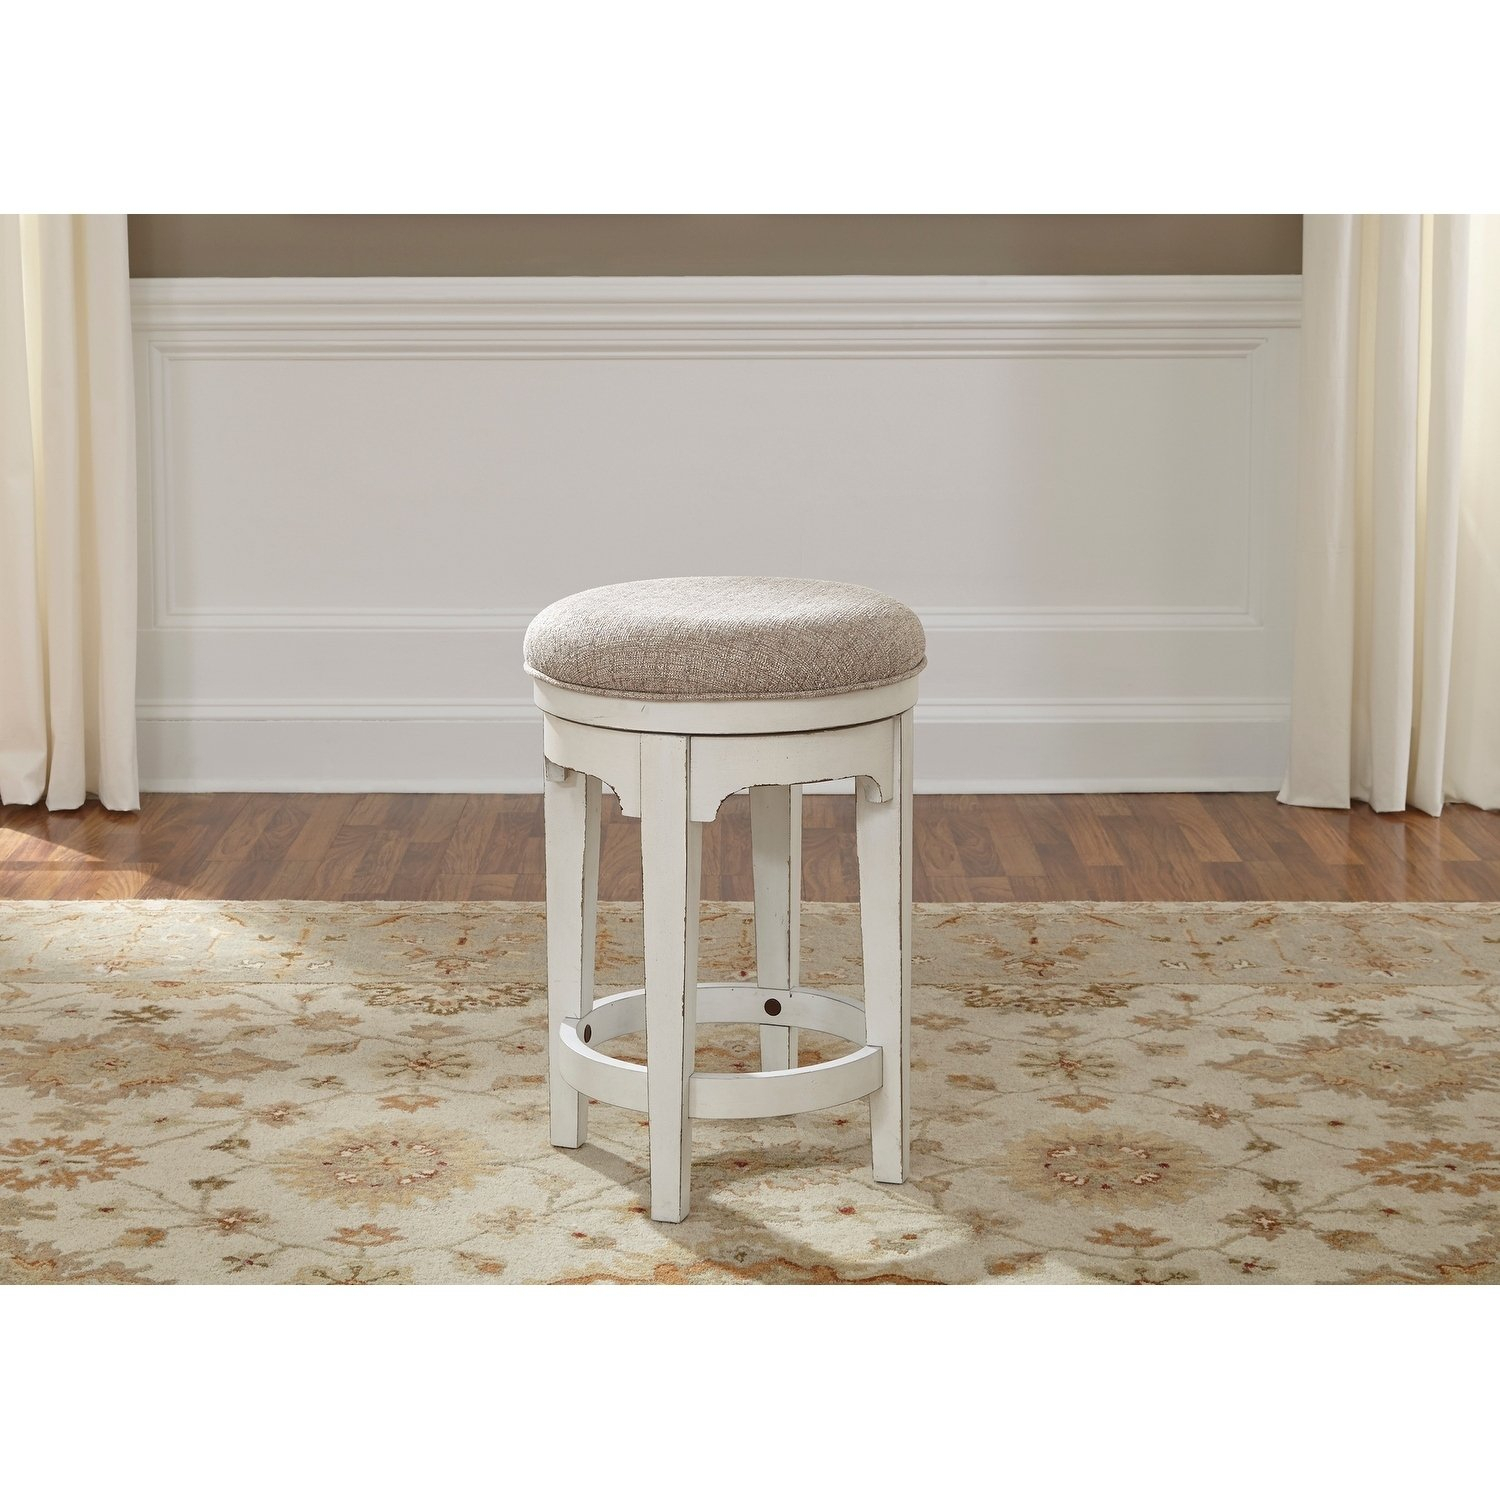 Shop Magnolia Manor Antique White Console Swivel Stool – Free Inside Manor Grey Swivel Chairs (Image 23 of 25)